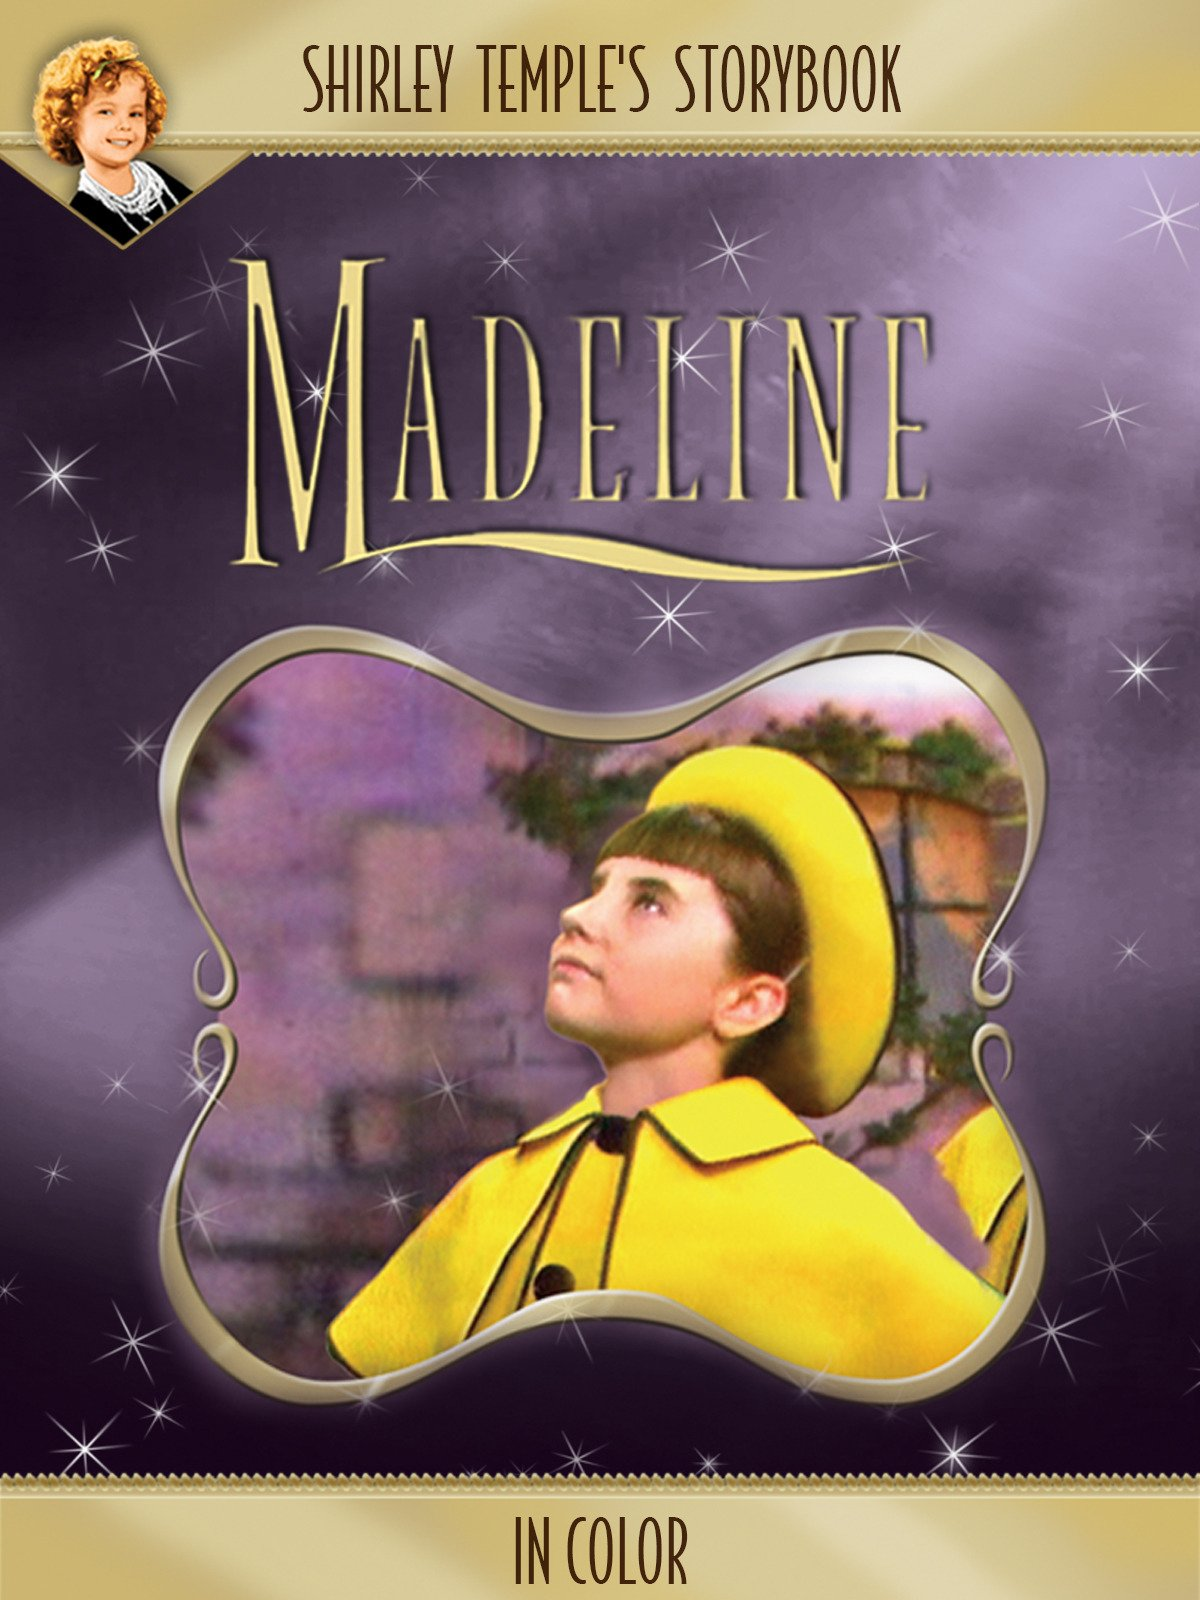 Shirley Temple's Storybook: Madeline (in Color) on Amazon Prime Instant Video UK